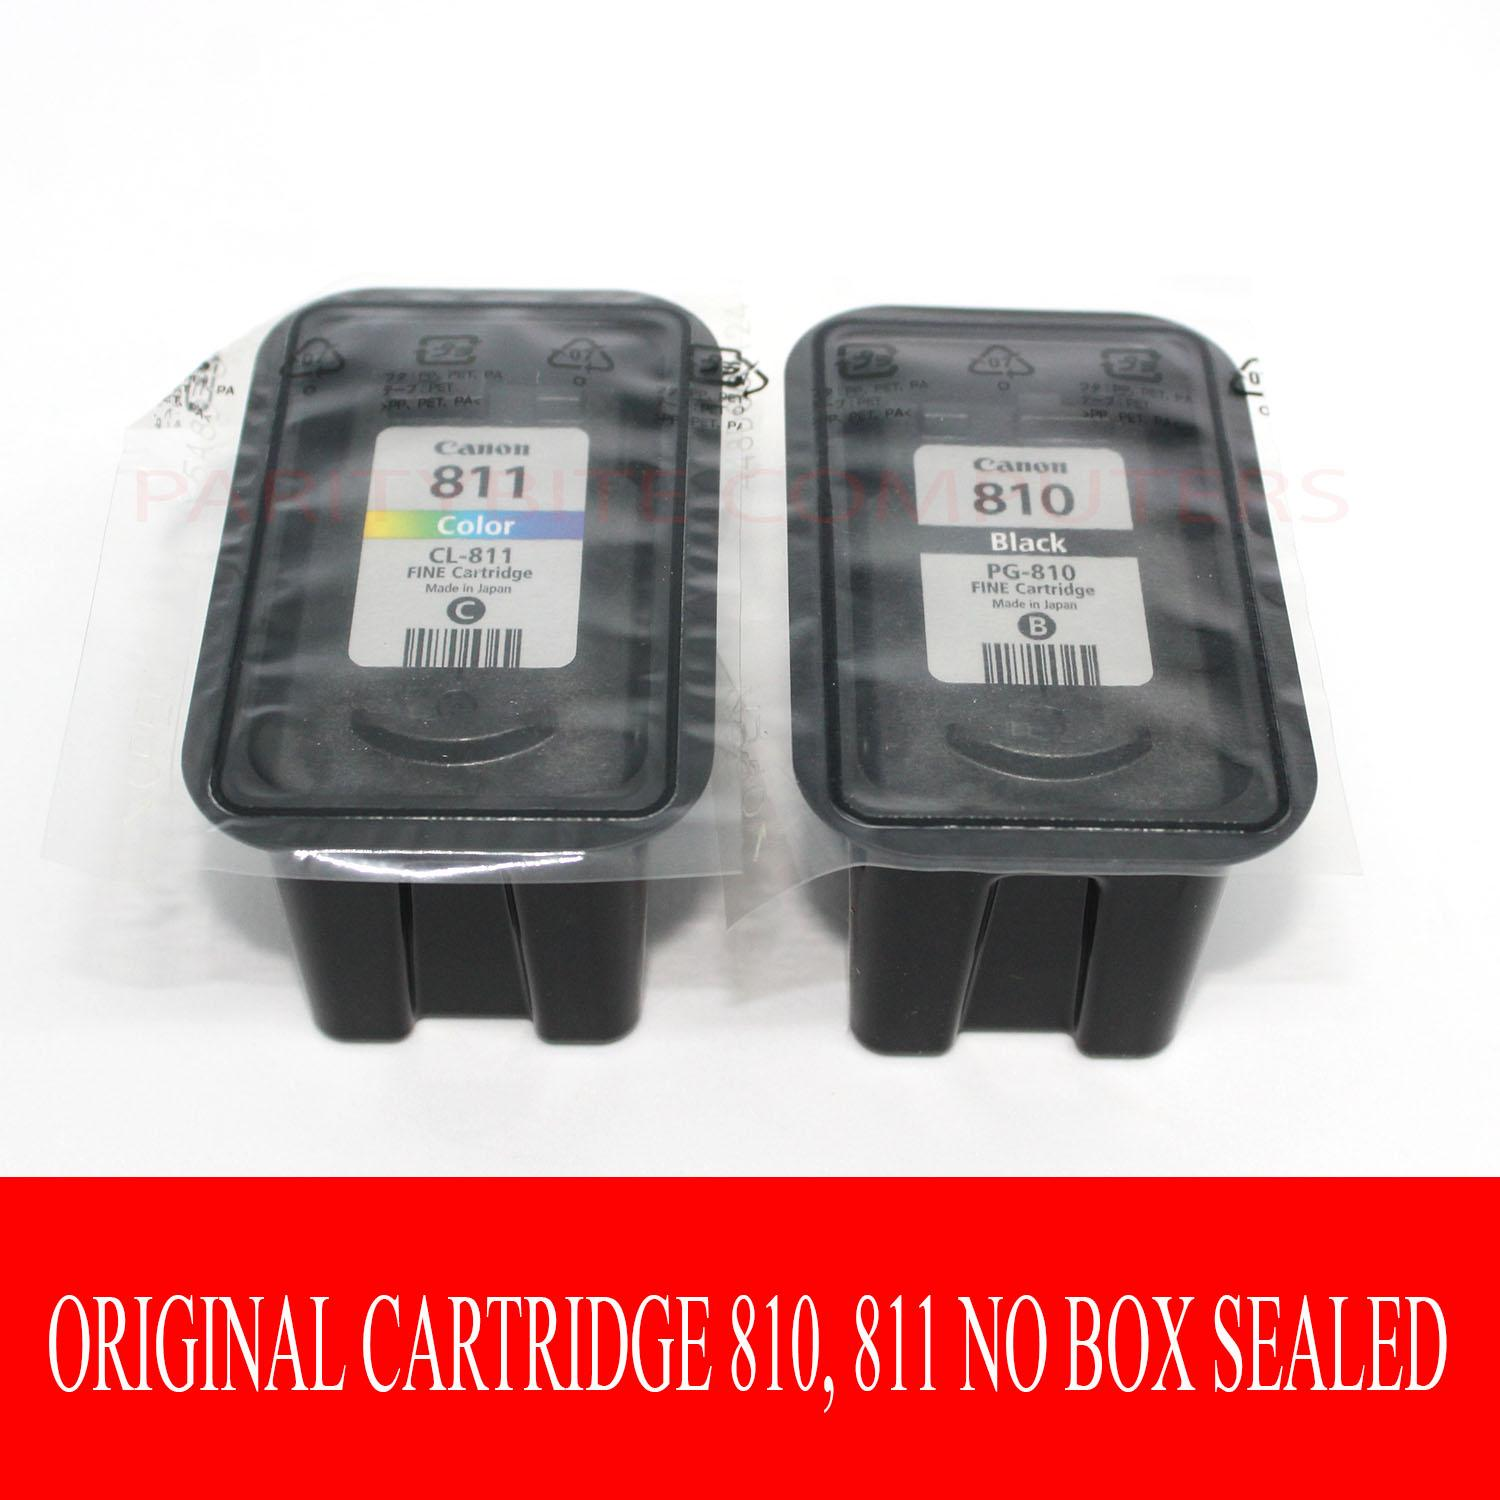 Inkjet Inks For Sale Cartridges Prices Brands Specs In Canon Catridge Cl811 Color Original Tinta Pg 810cl 811 Cartridge Sealed No Box